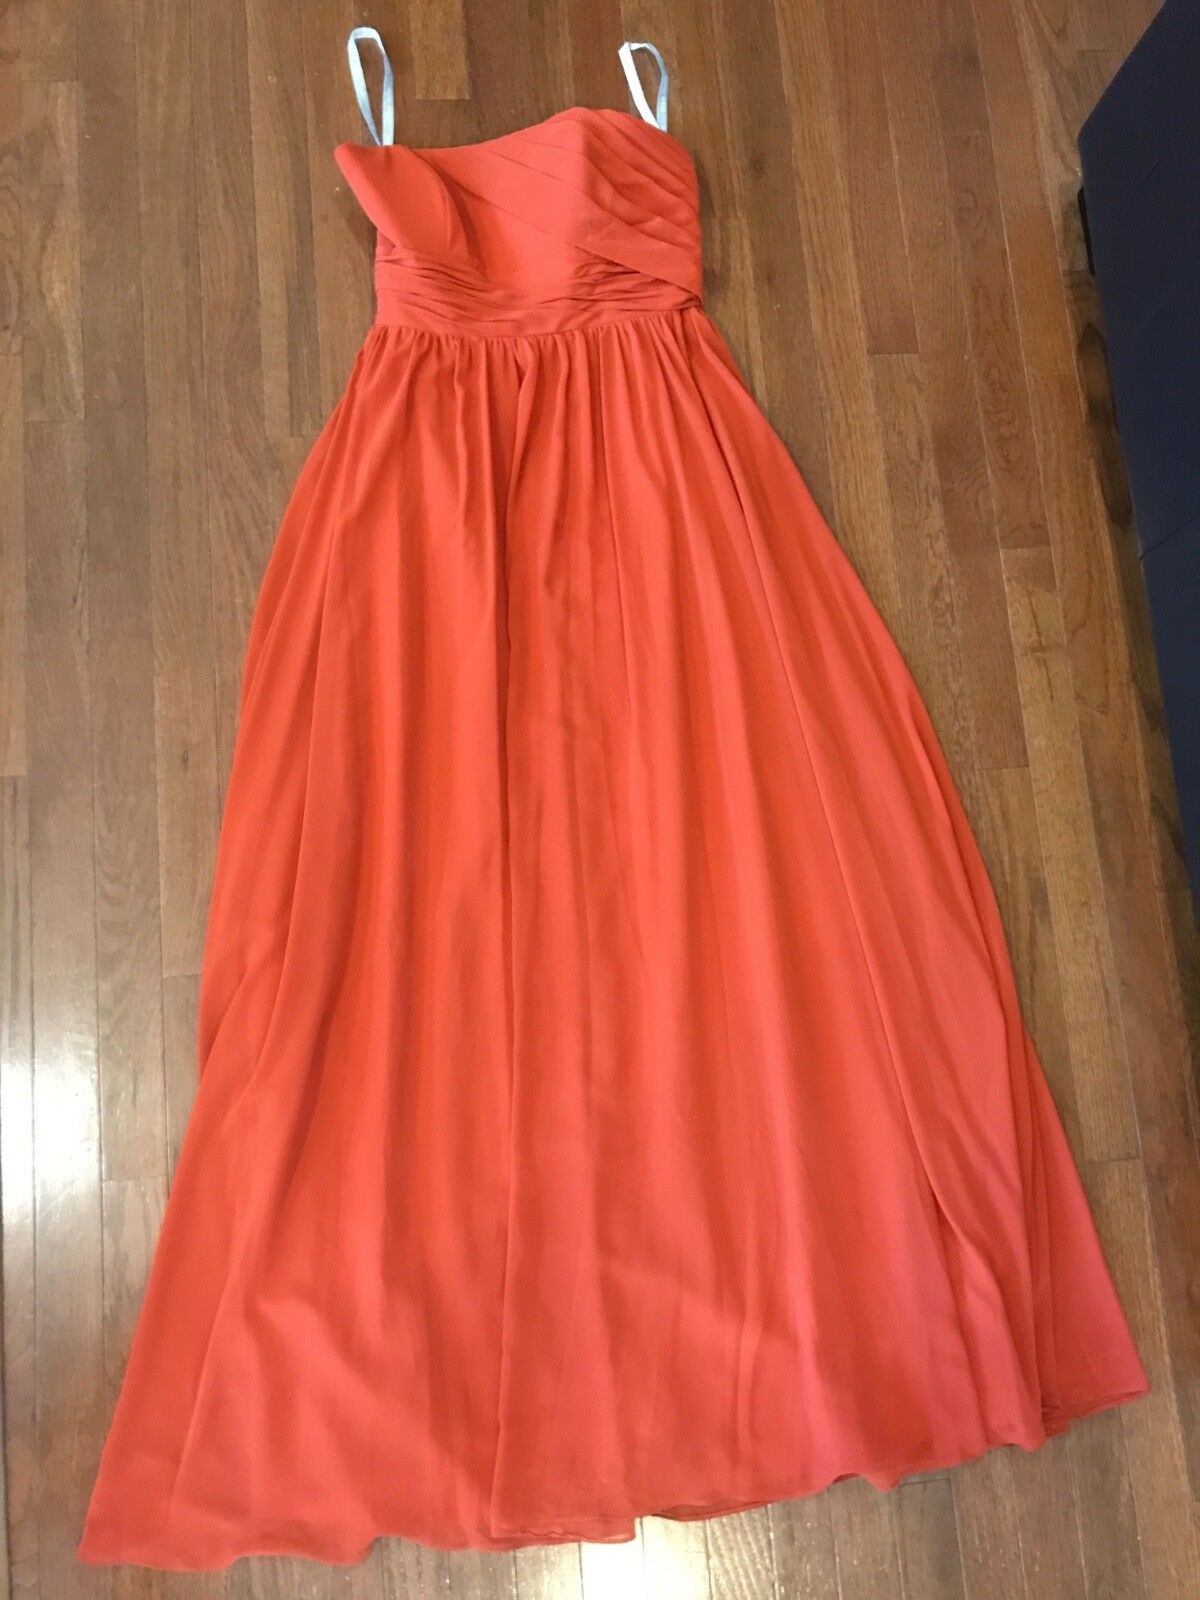 Alfred Angelo Orange full-length Bridesmaid dress size 8, worn once